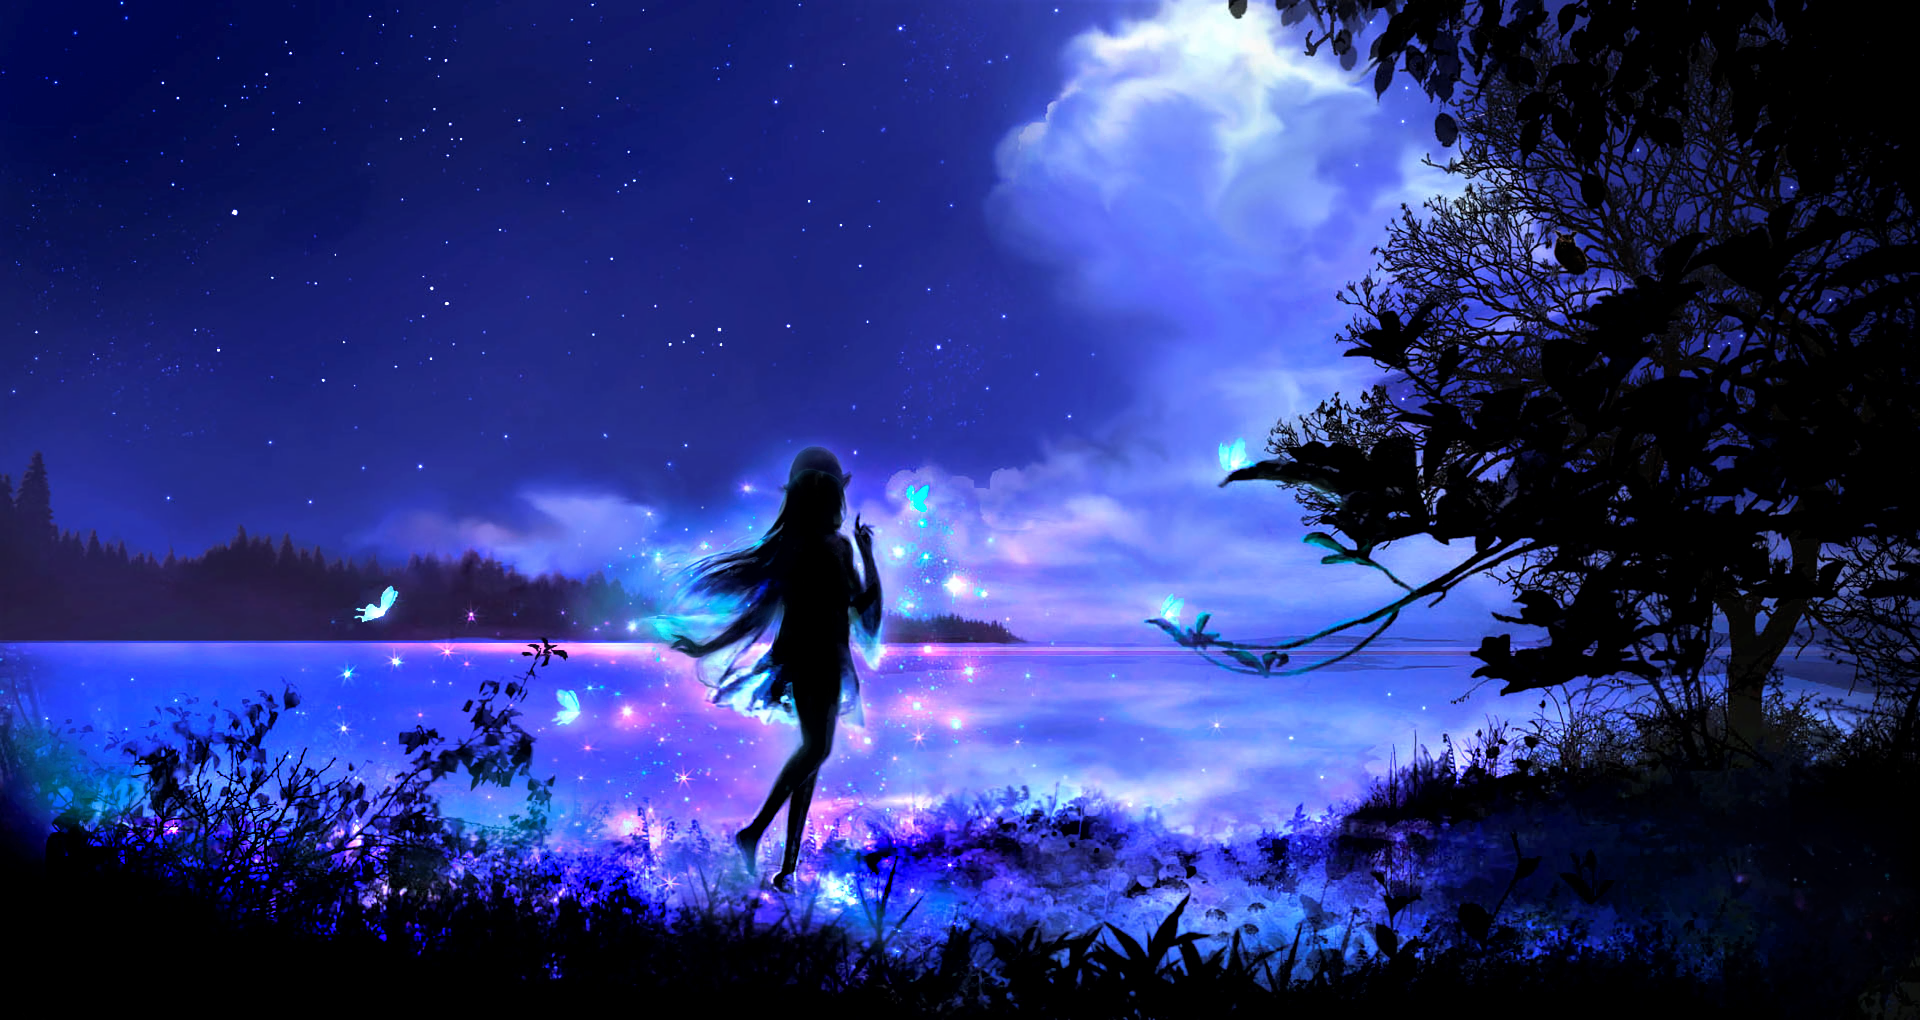 Cool Wallpaper Night Fairy - thumb-1920-903227  Best Photo Reference-32986.png